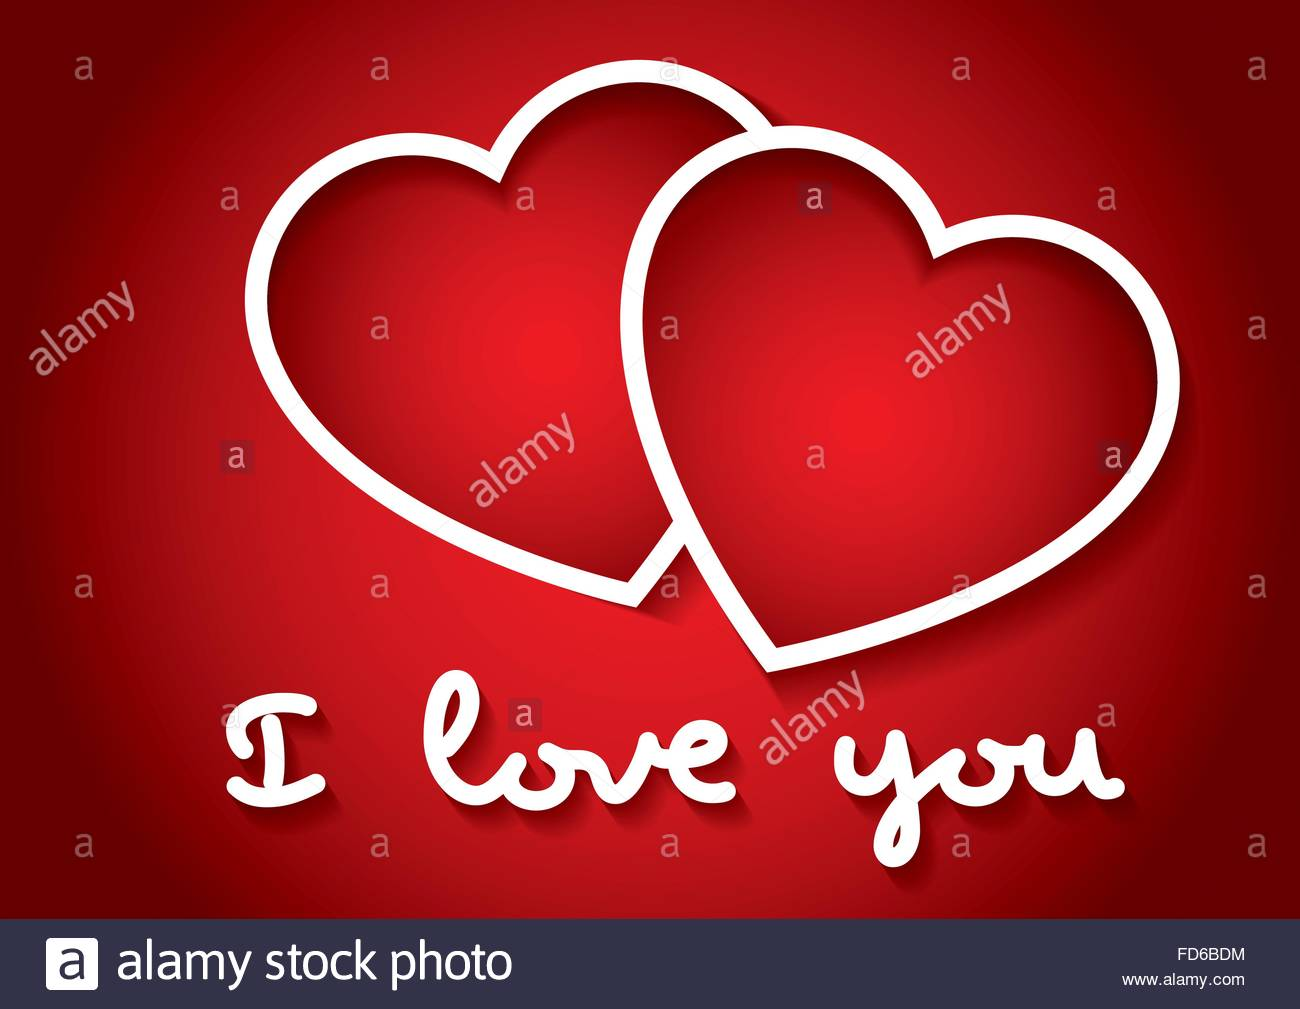 I love you words with two hearts in red. Valentines day